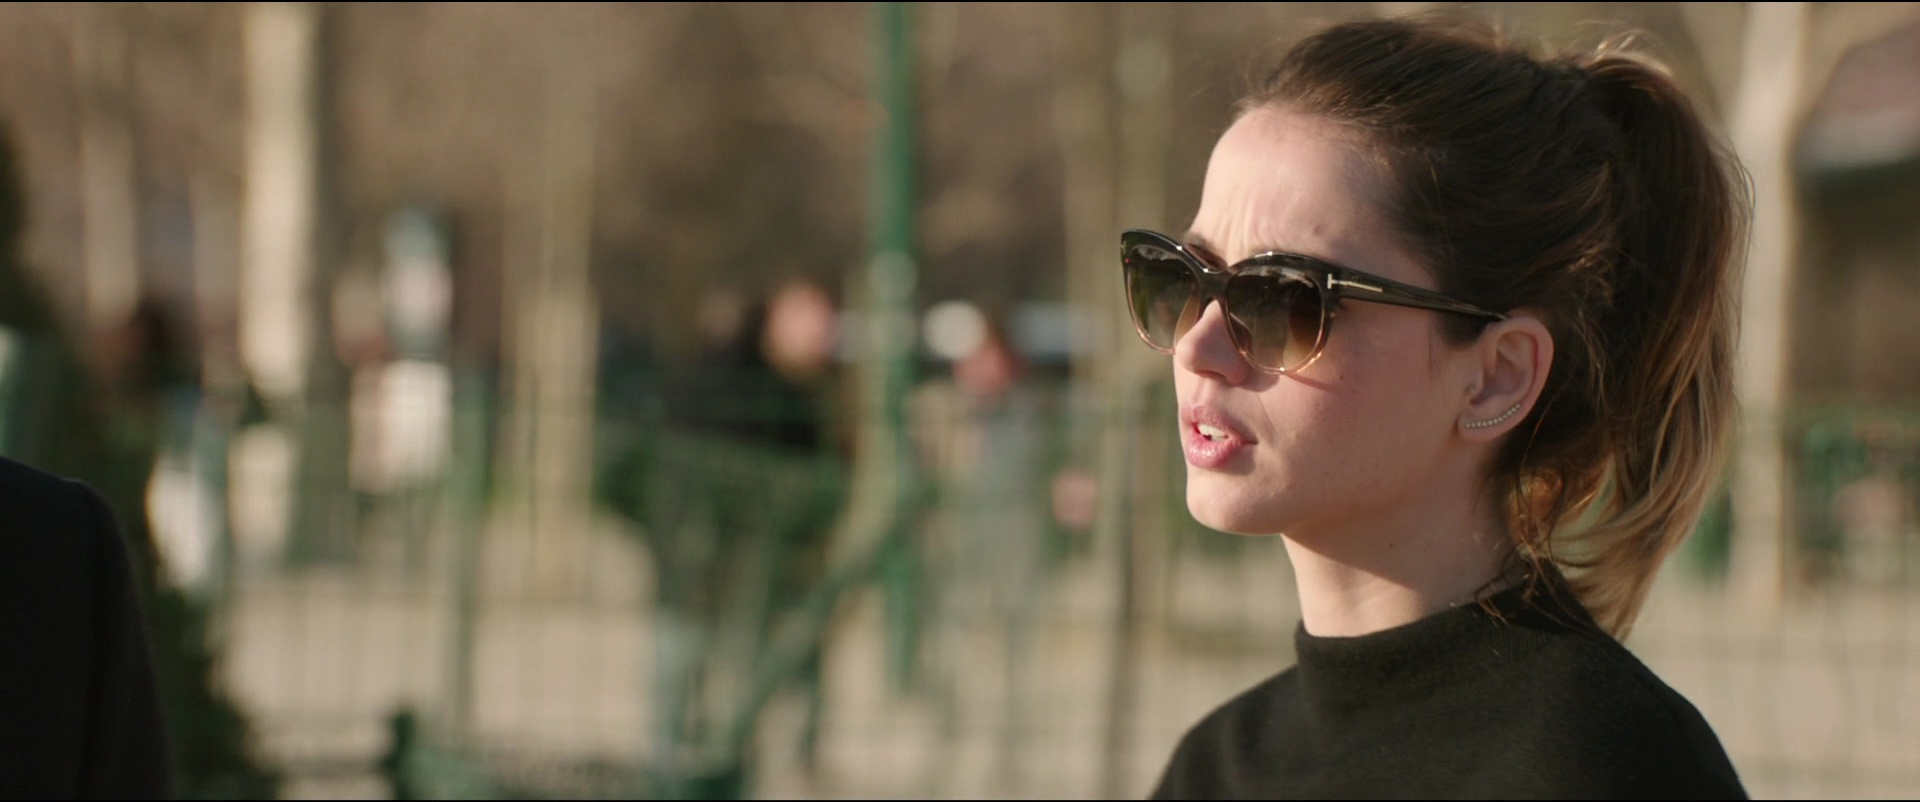 tom ford sunglasses worn by ana de armas in overdrive